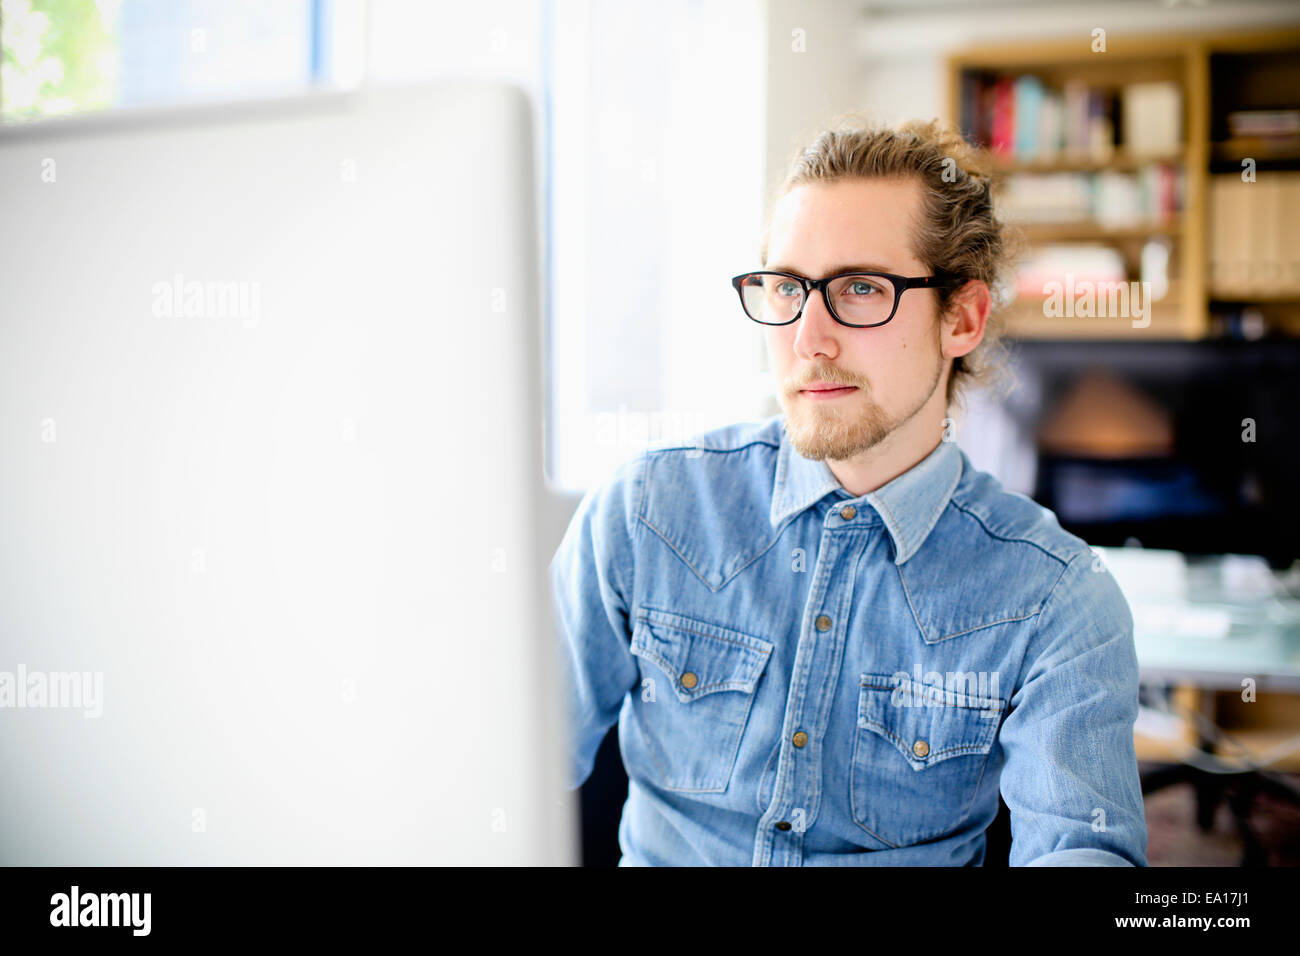 Graphic designer working at computer - Stock Image